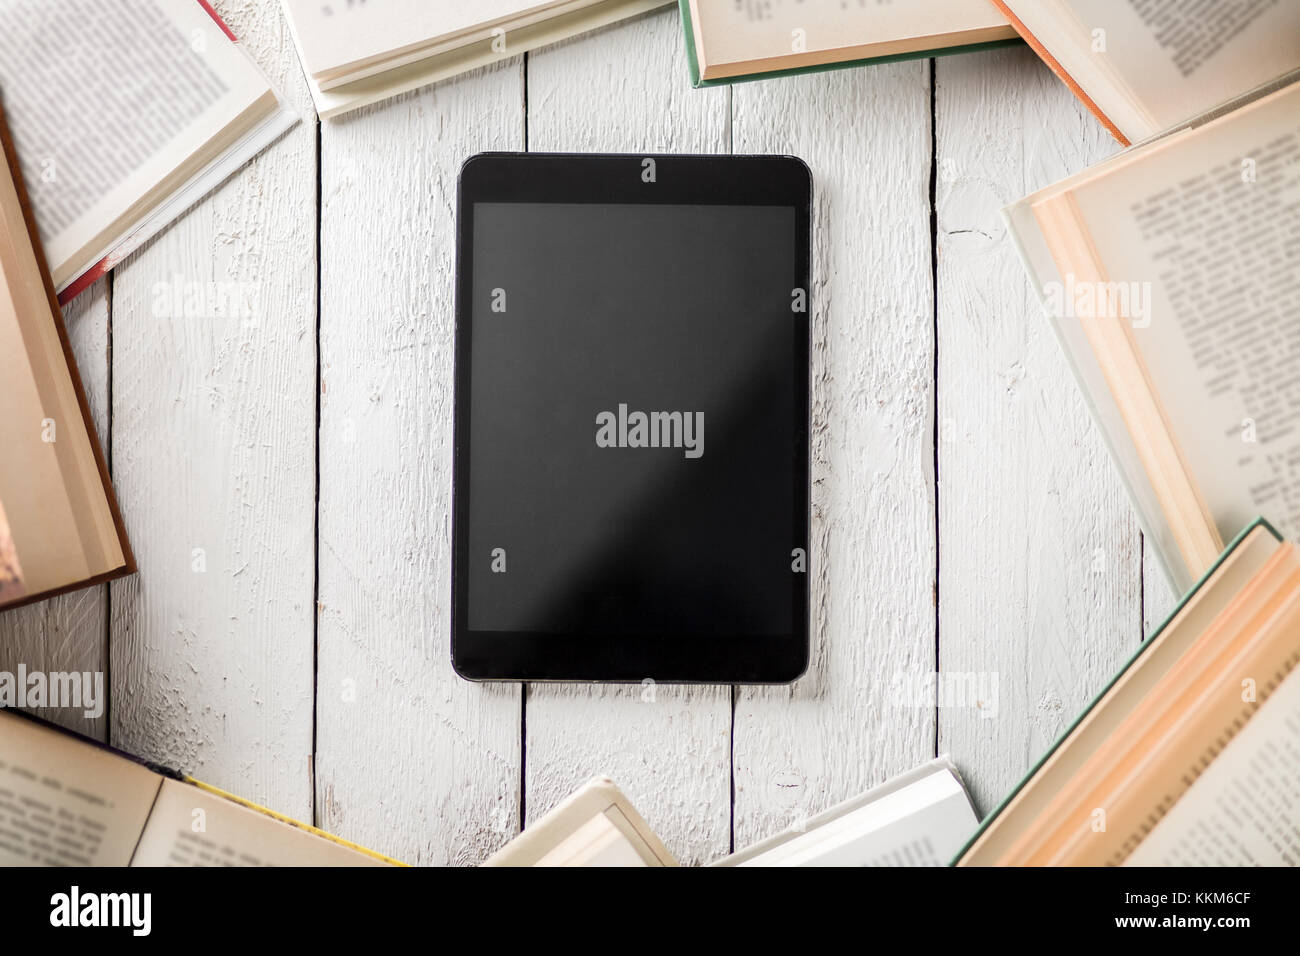 Black Ebook Reader with Many Paper Books Stock Photo